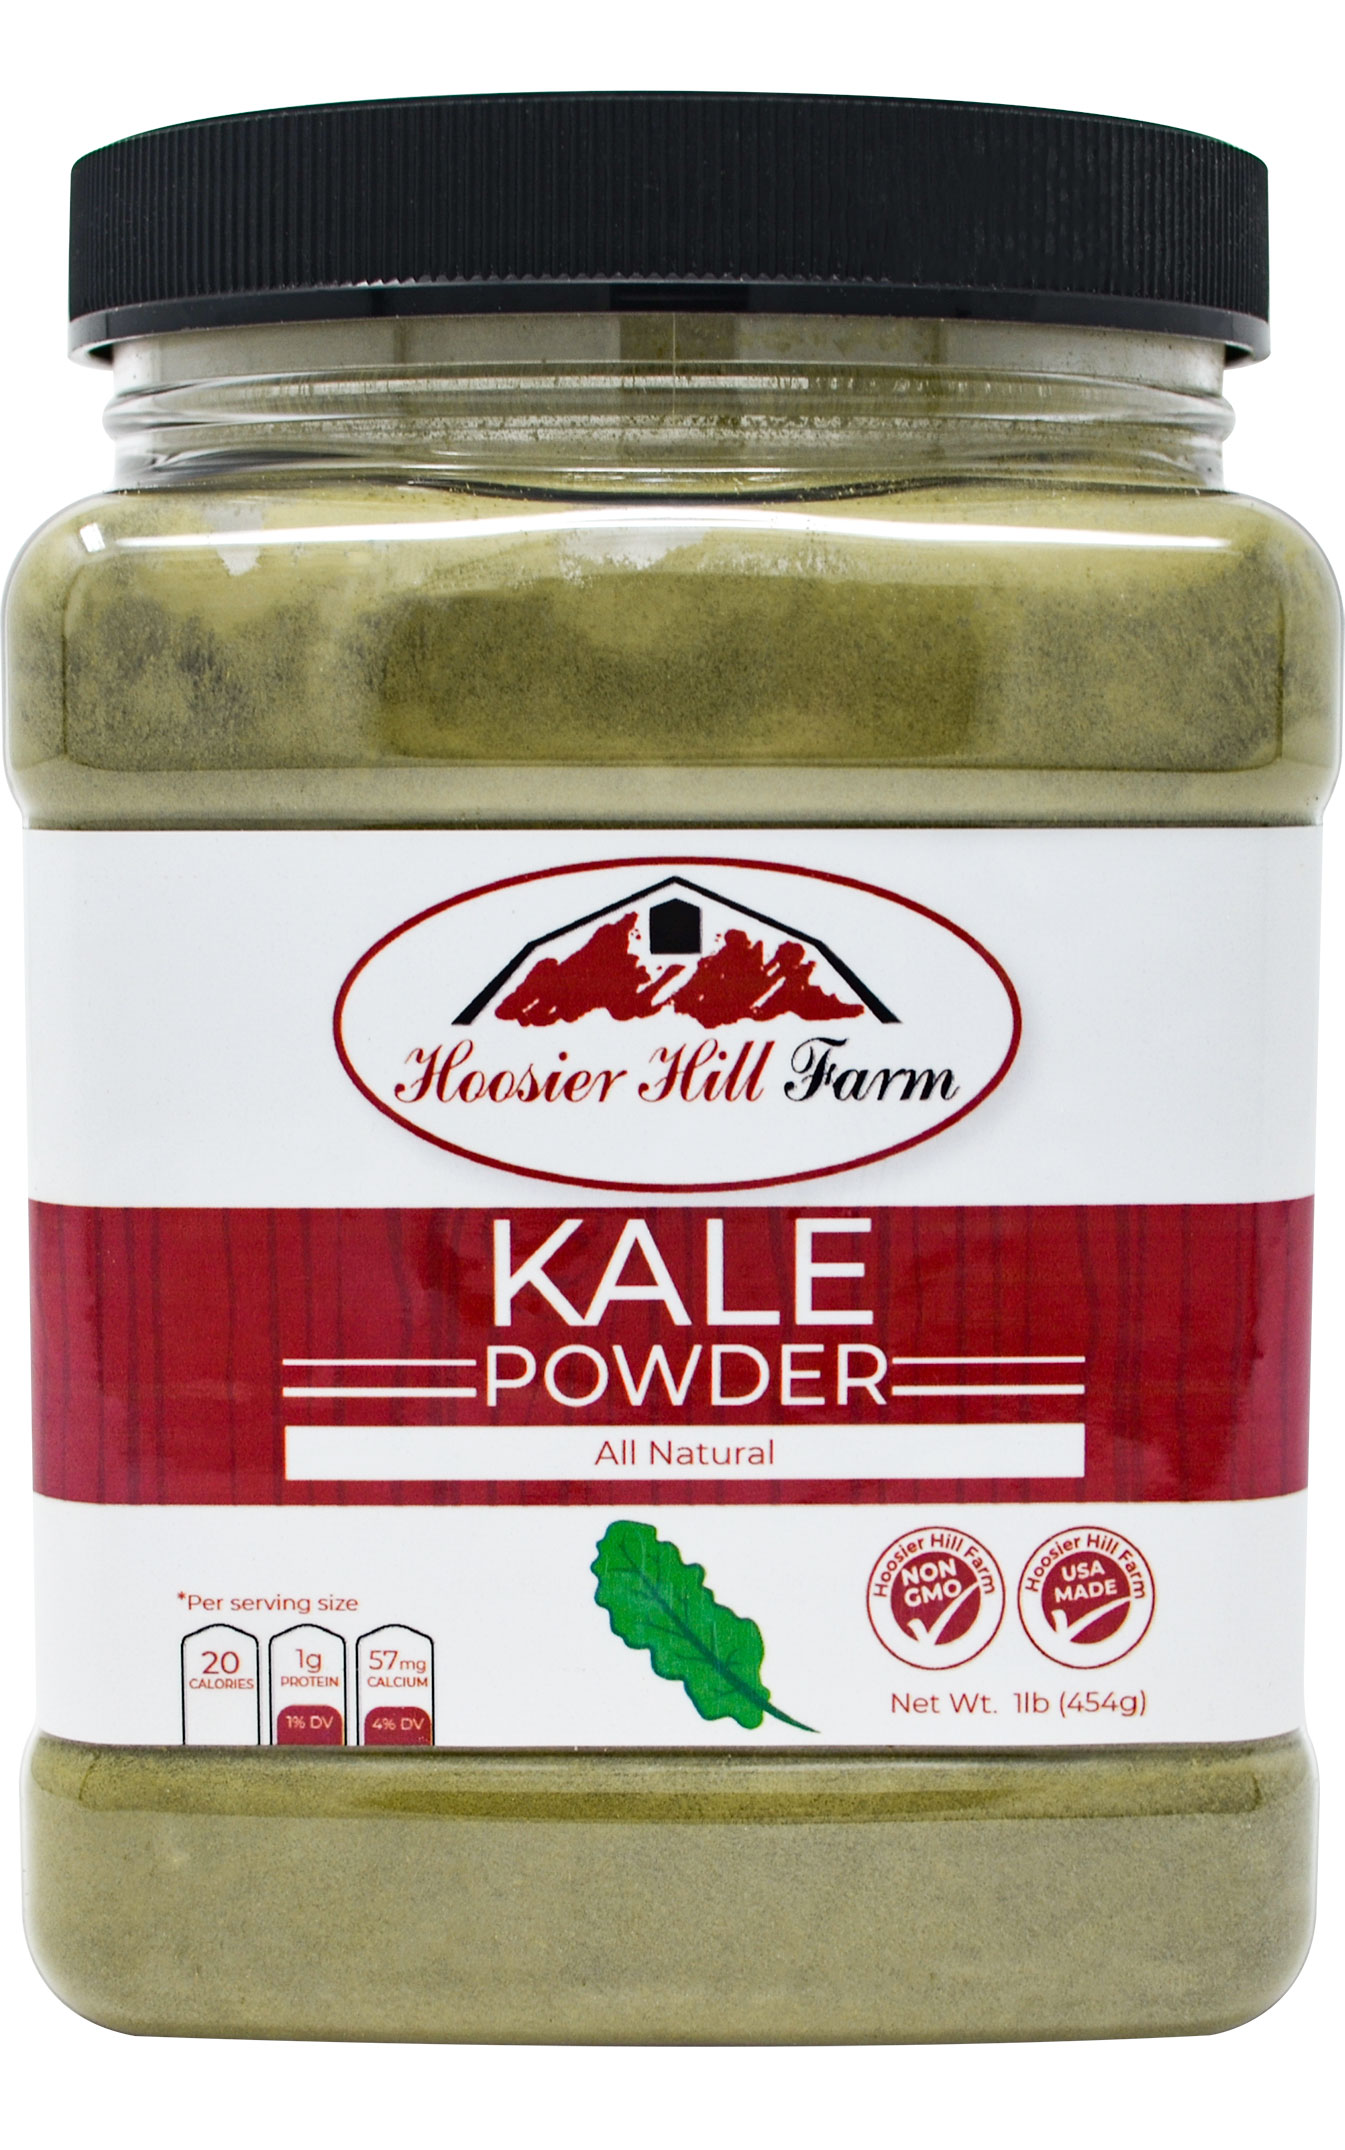 Hoosier Hill Farm All Natural Kale powder, 1 lb